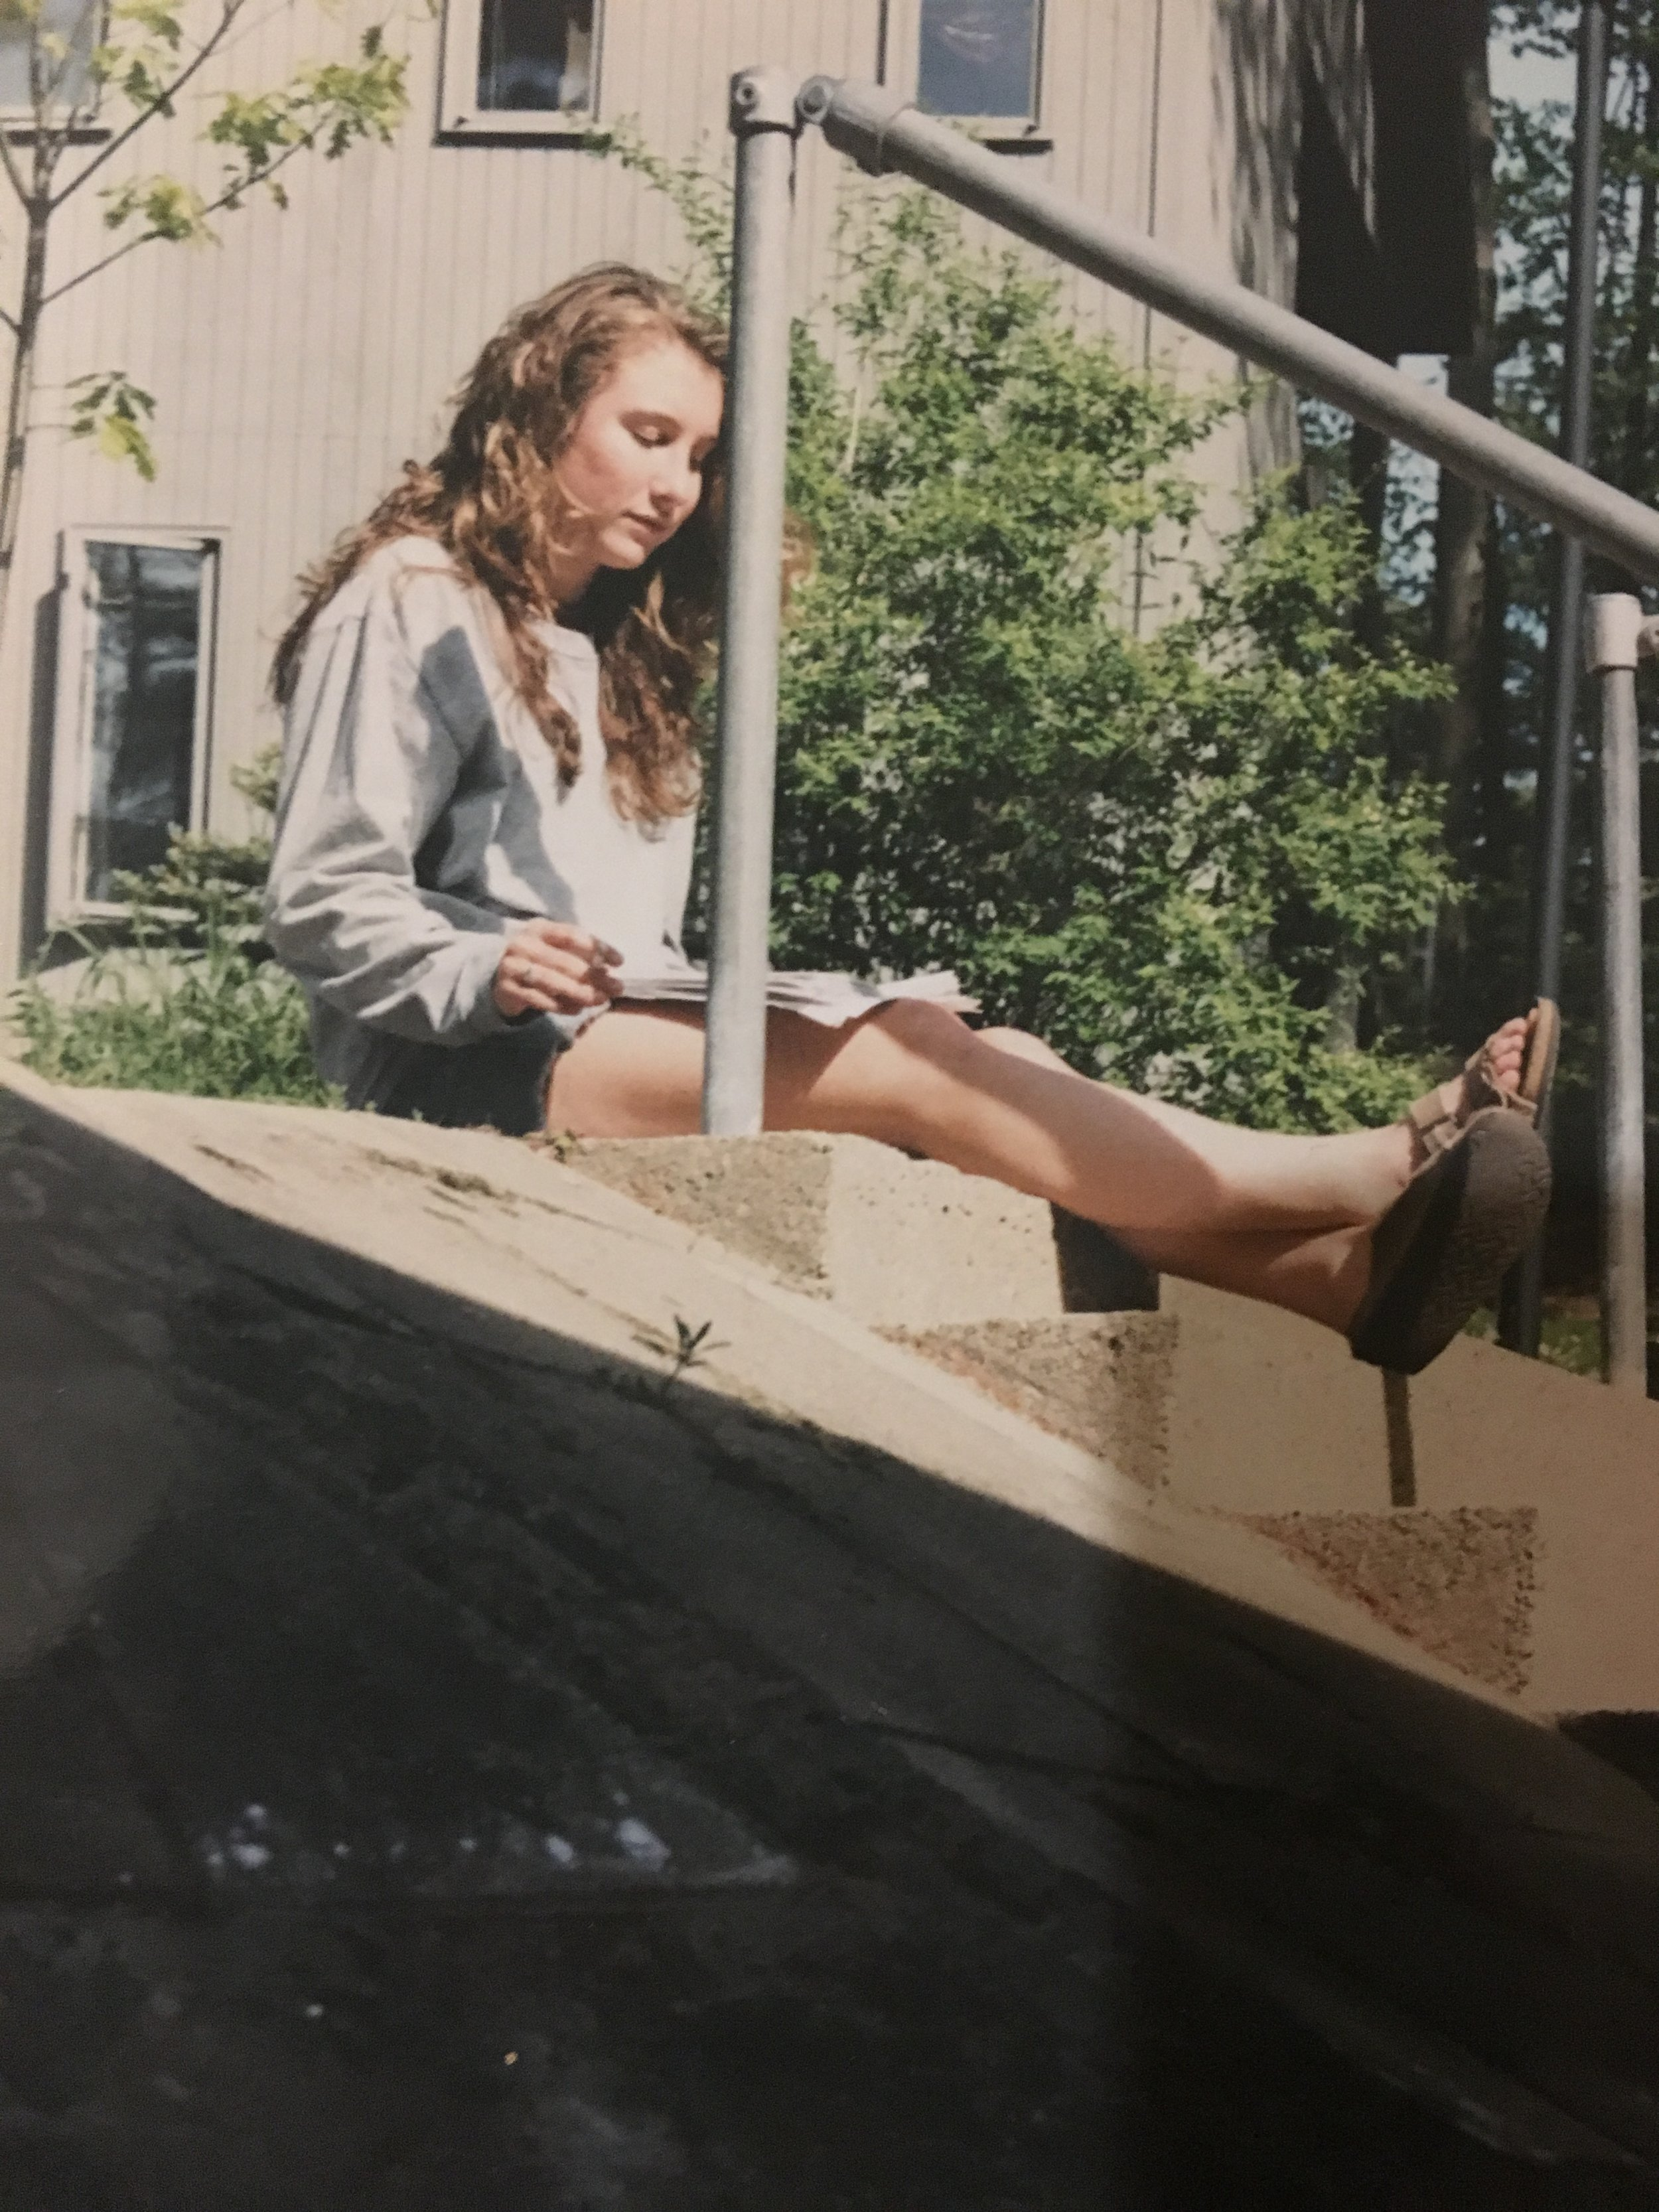 """Me """"studying and smoking outside my dorm room, back when photos were taken on film and printed at the local CVS...."""